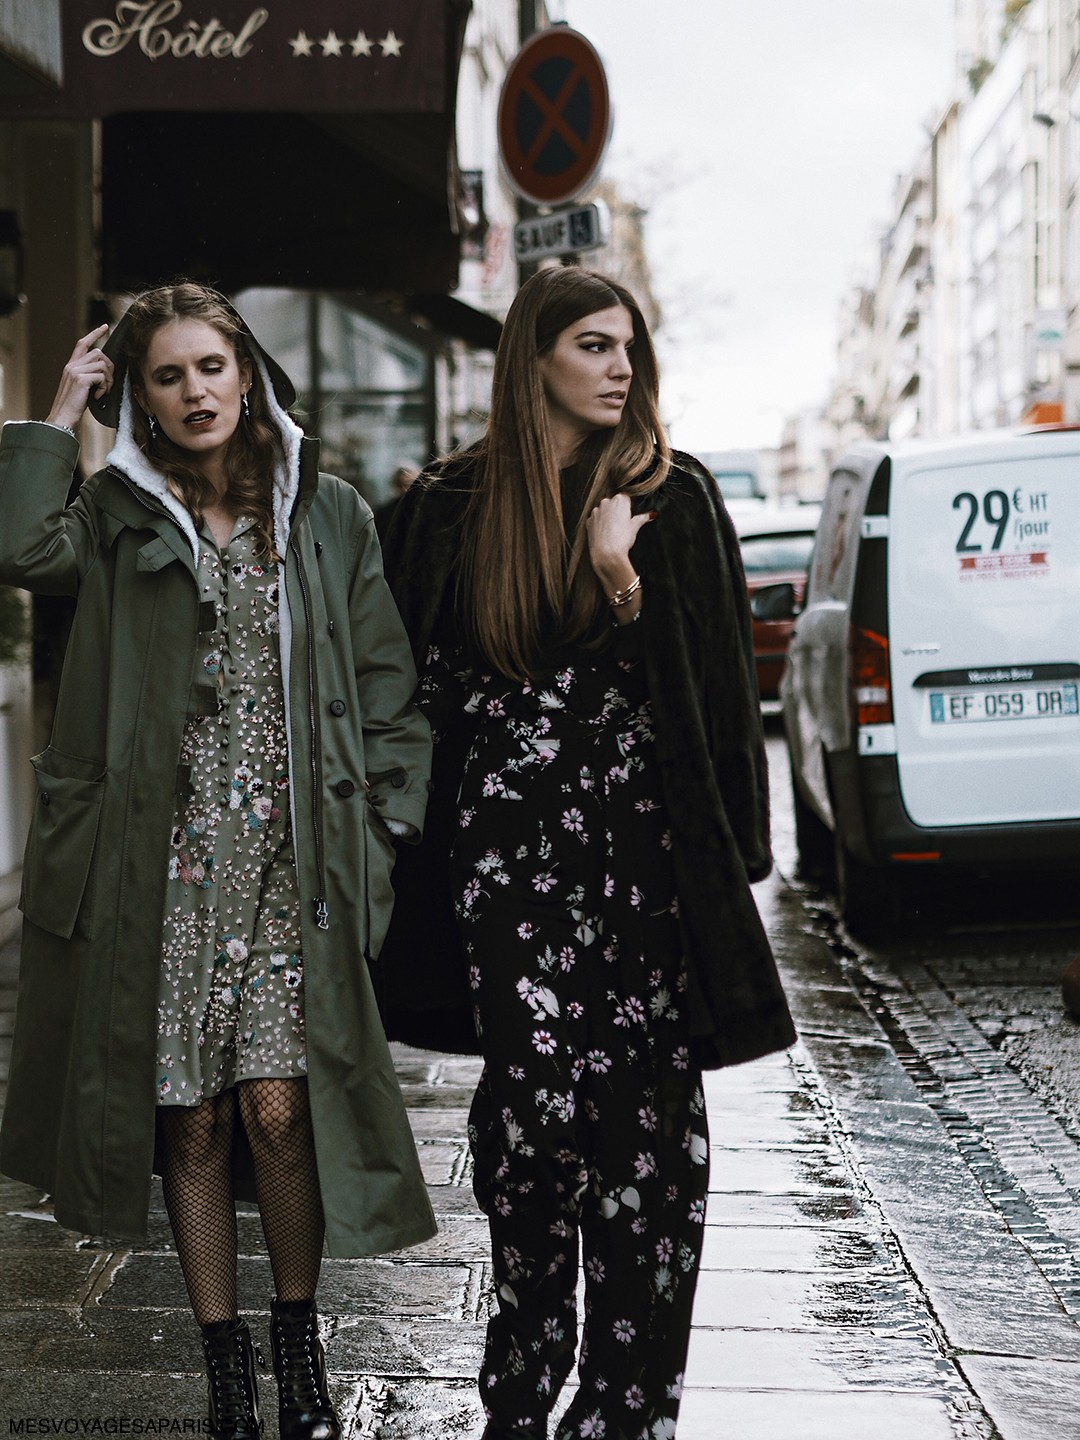 Bianca-Brandolini-PFW-street-style-march-2017-rainy-day-looks